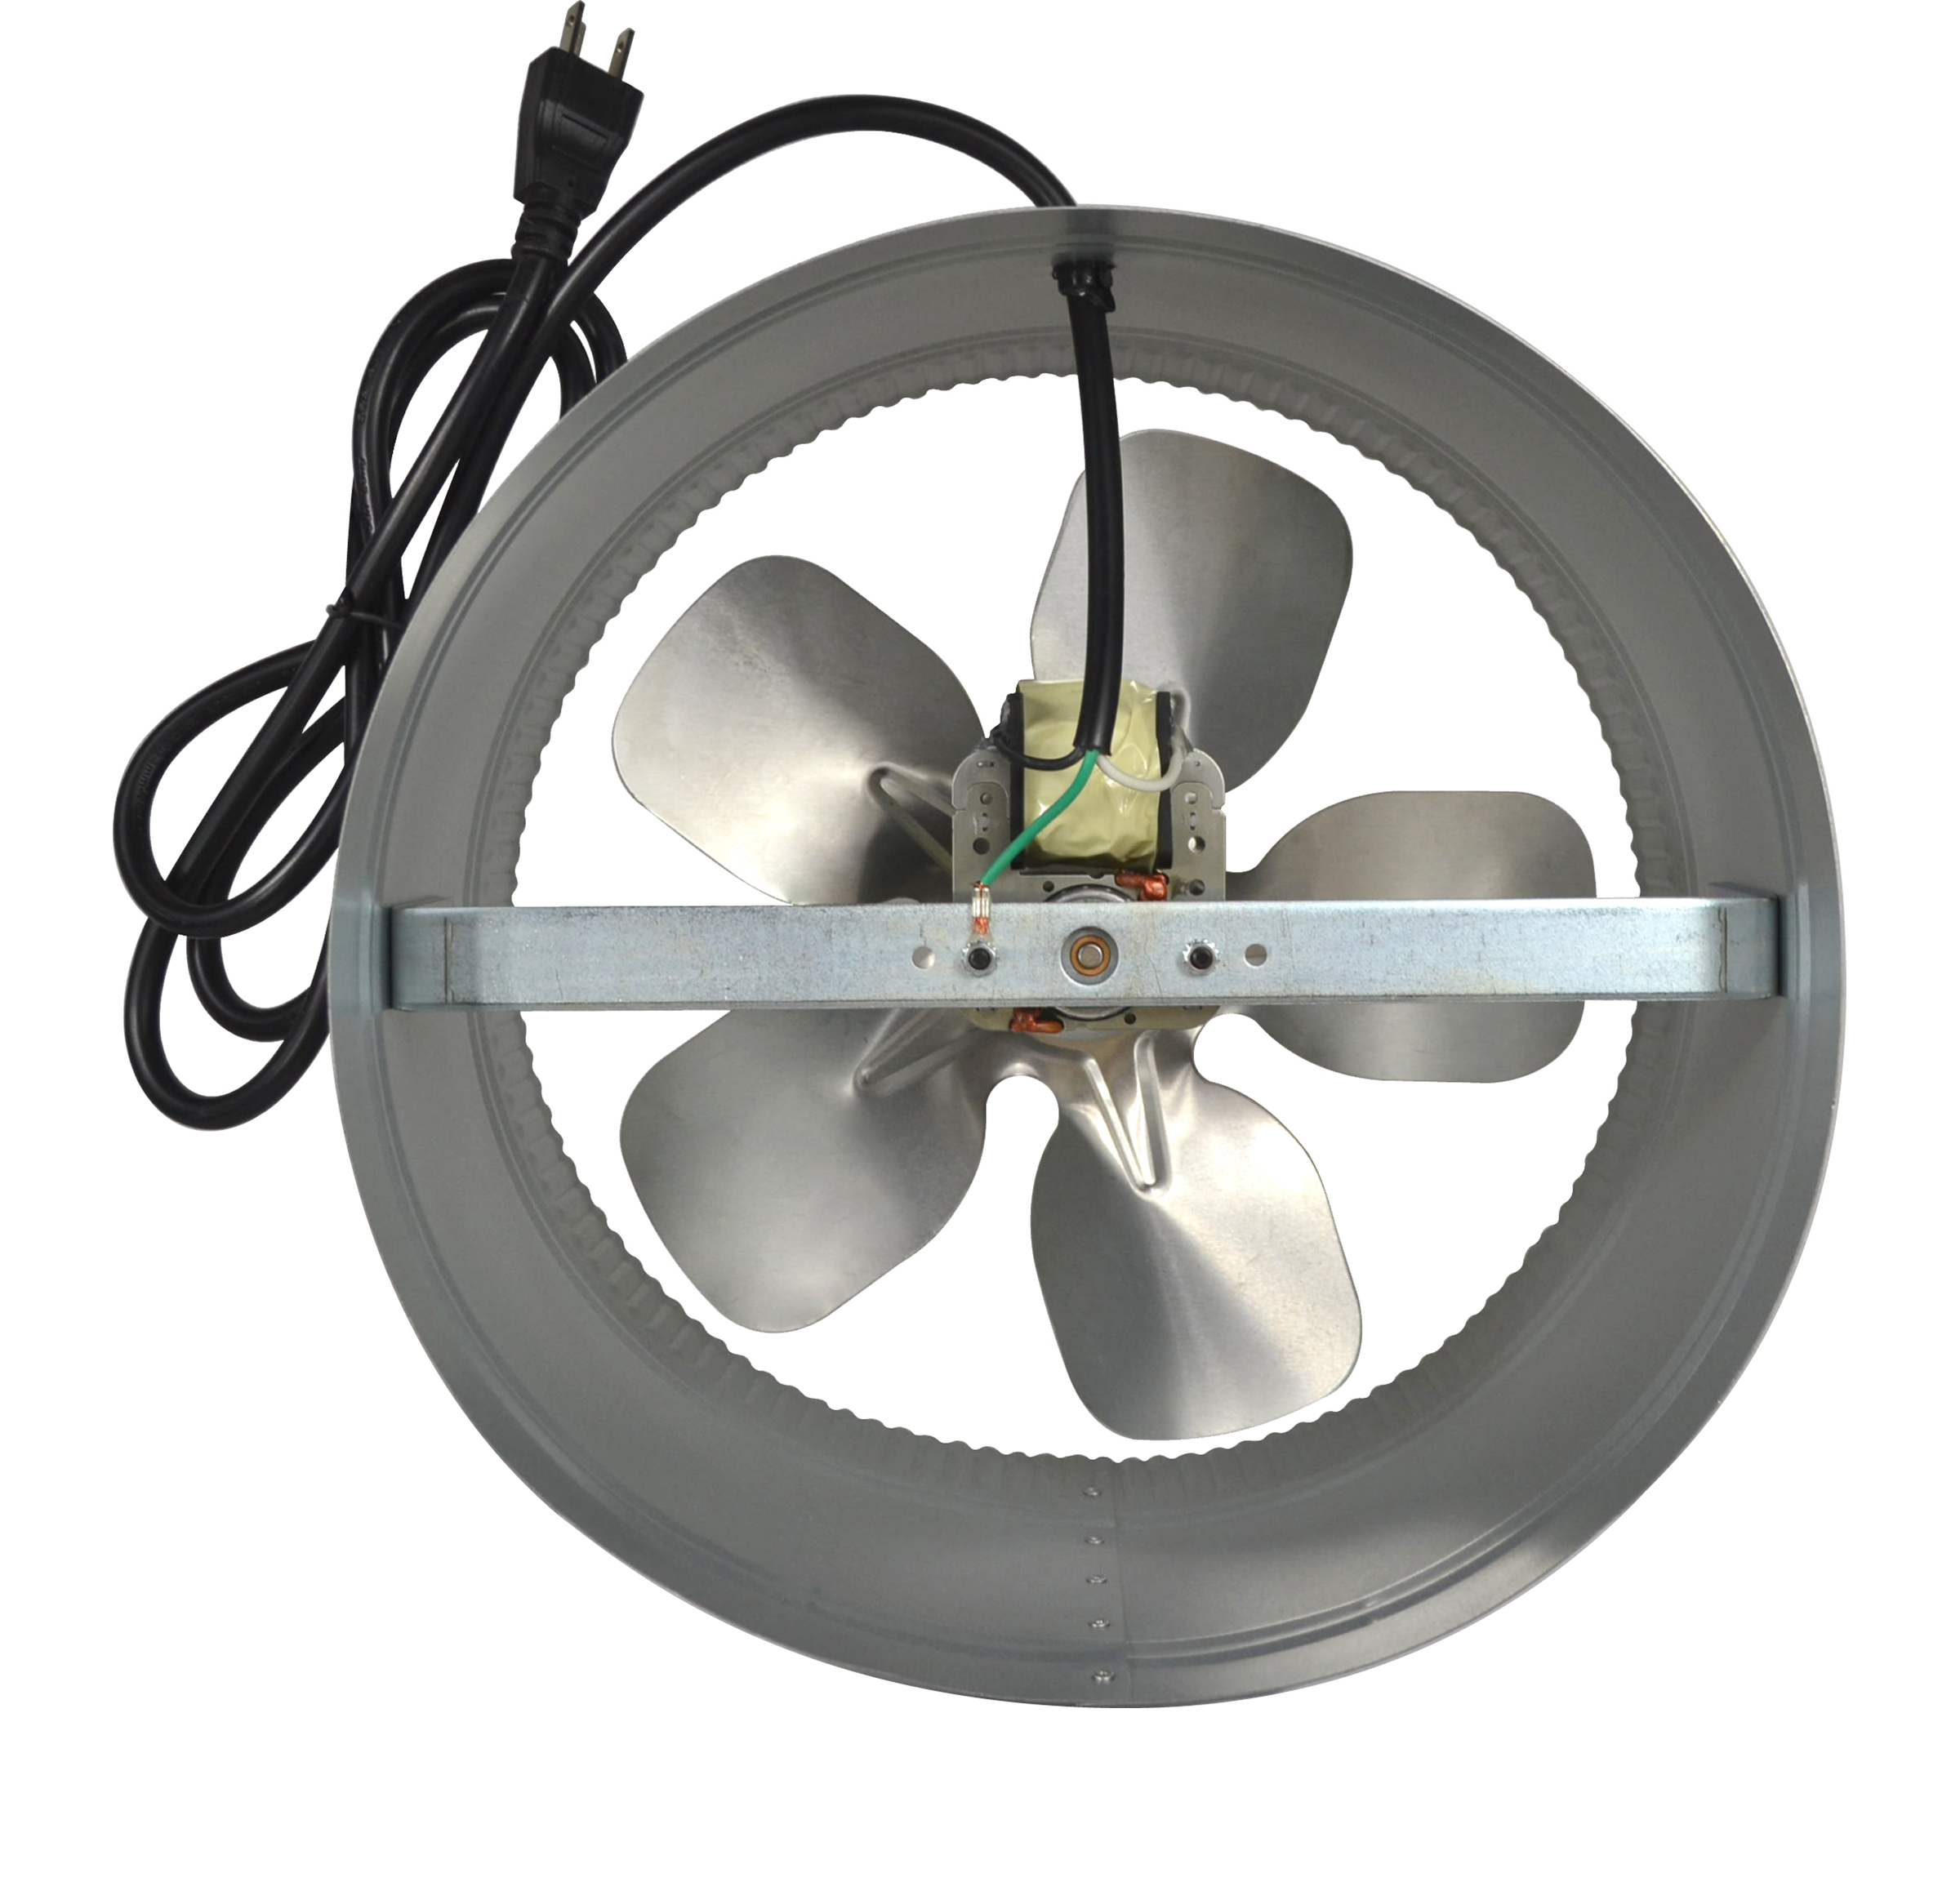 suncourt suncourt home inductor® corded in line duct fan™ db212c a 6 attached power cord